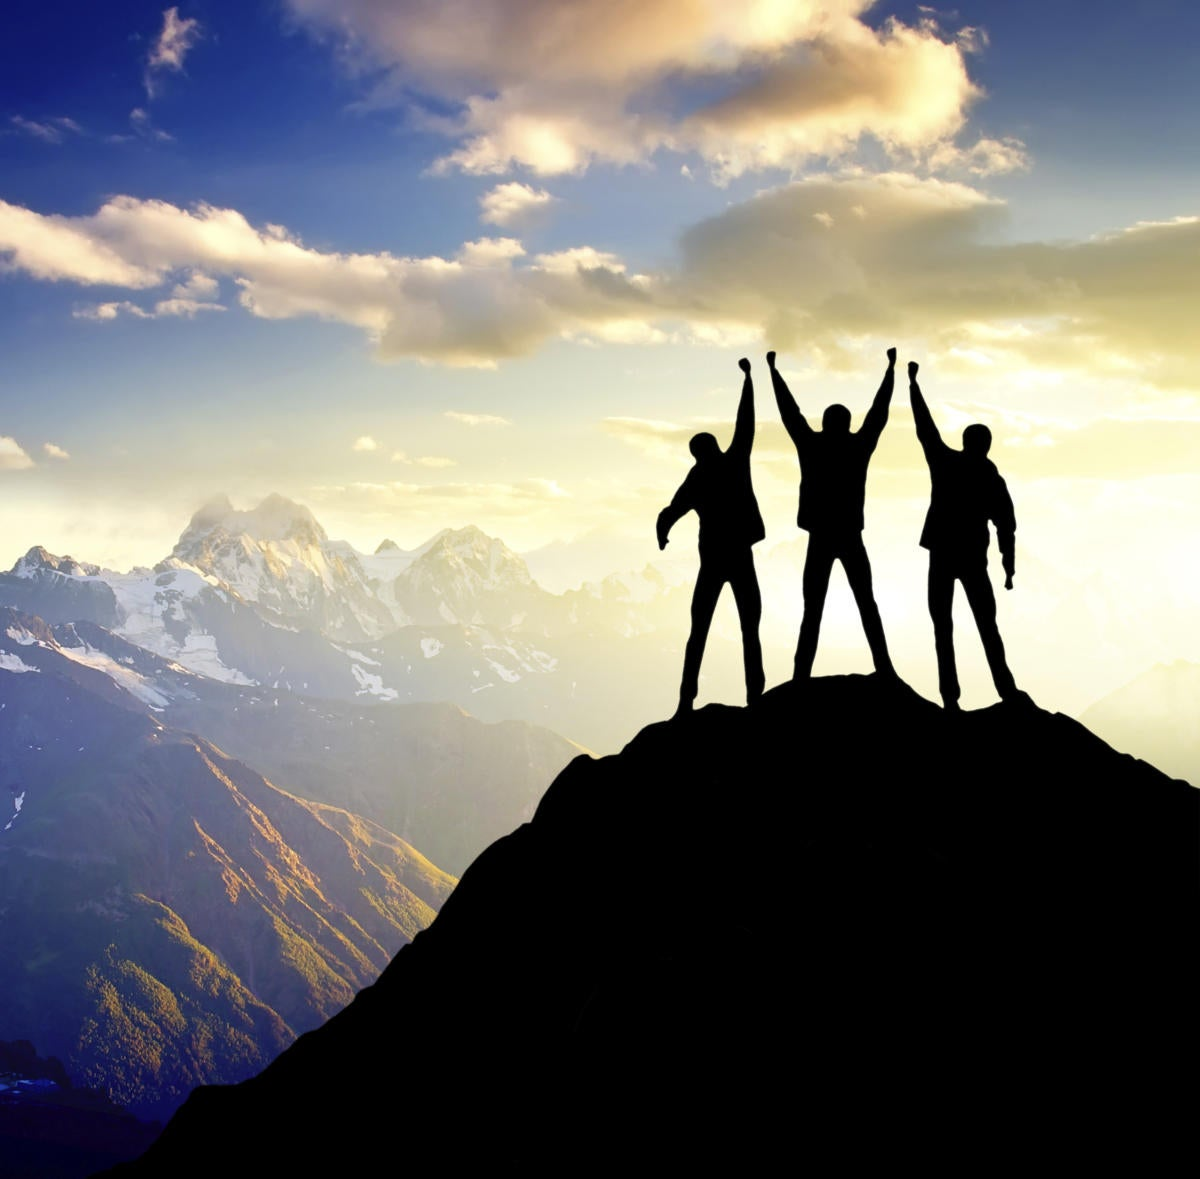 3 champions standing on top of mountain winner triump